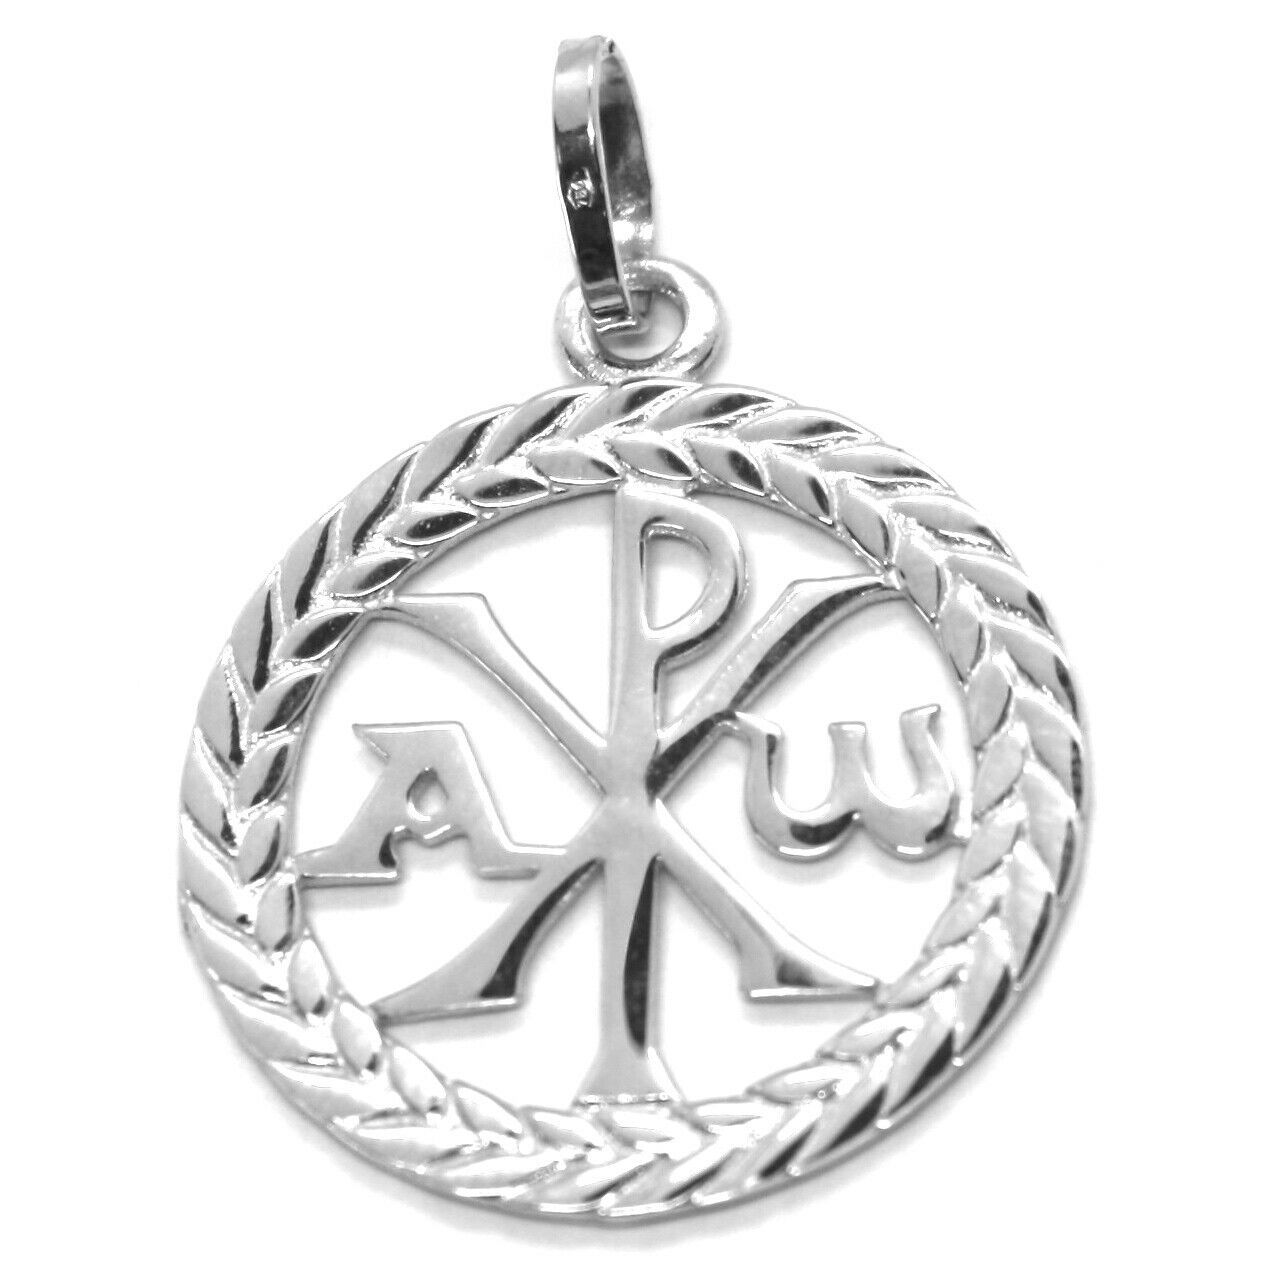 SOLID 18K WHITE GOLD MONOGRAM OF CHRIST PENDANT, PEACE, MEDAL, 0.95 INCHES